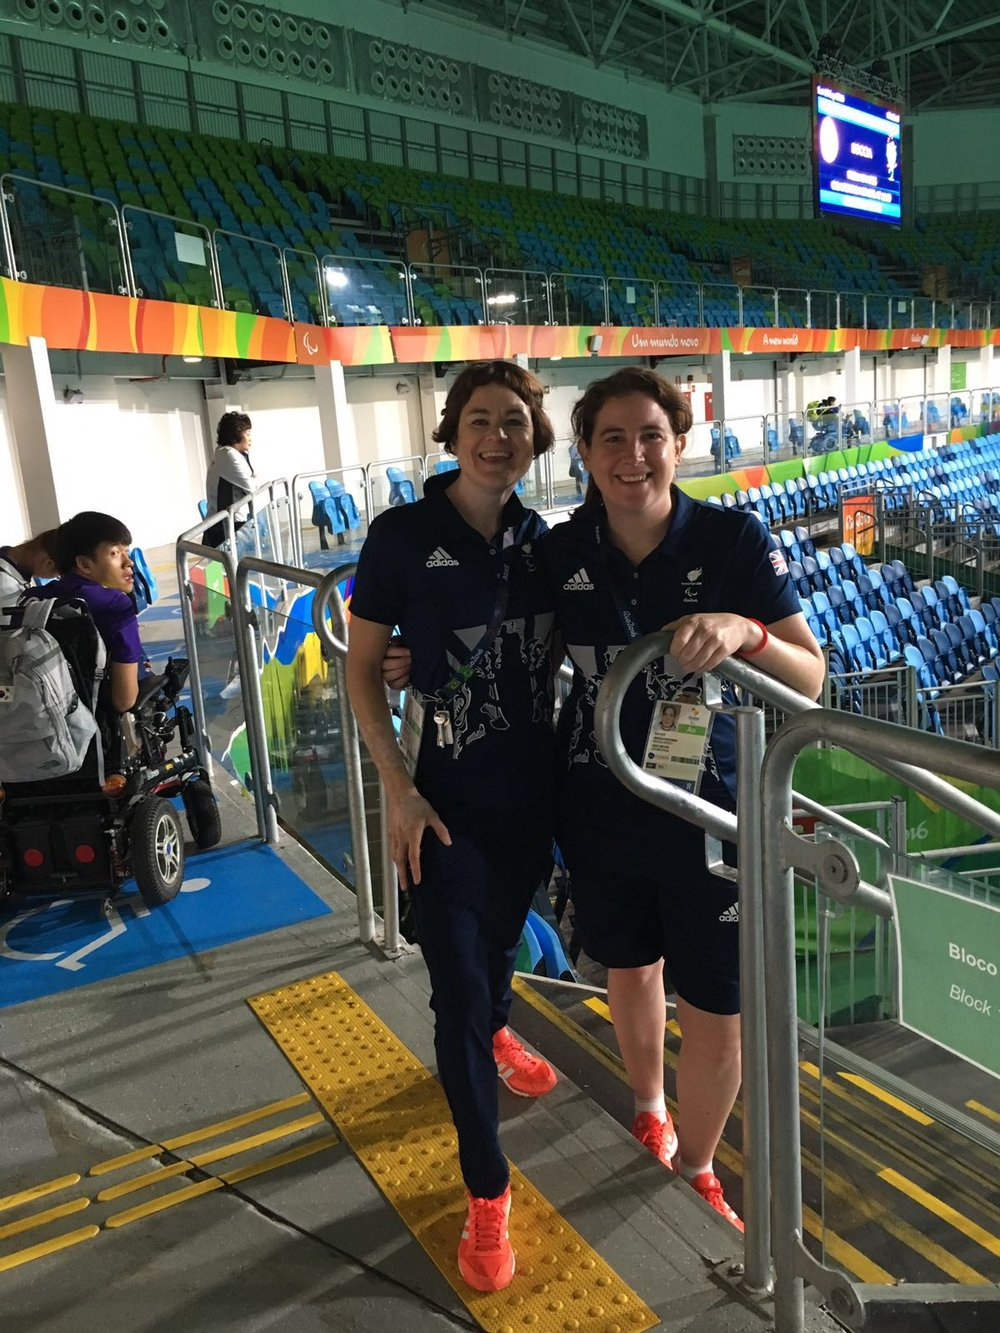 Dawn Ibrahim (L) and Fran Lace (R) at the Paralymic Games in Rio